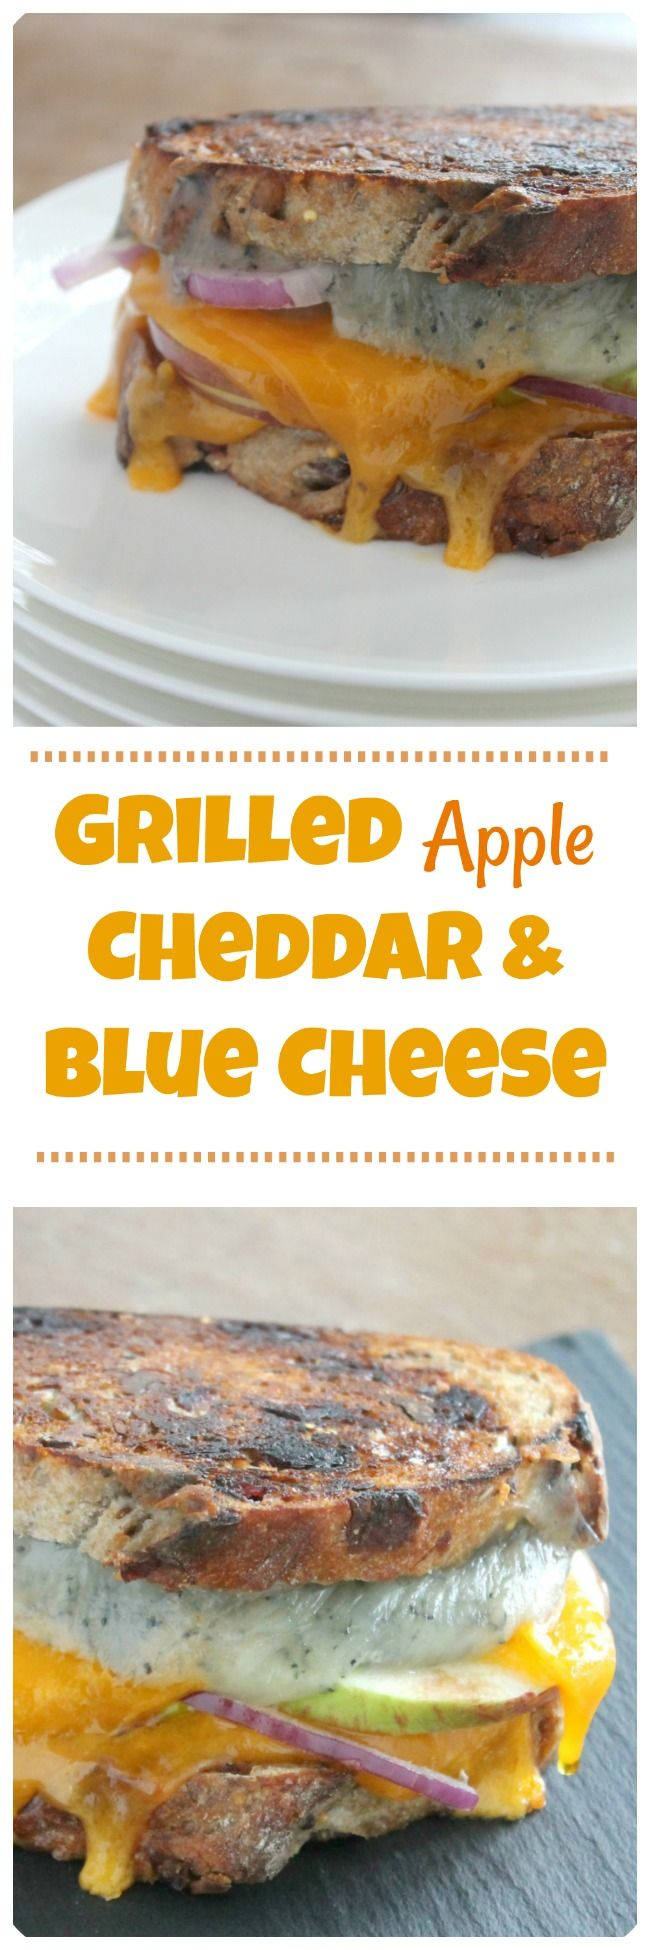 Grilled Apple Cheddar and Blue Cheese.  Cranberry walnut bread stuffed with sweet farm apple slices, sharp cheddar, tangy blue cheese and red onion slices. All the flavors of fall in a warm, buttery, crisp grilled cheese. This is an adult version of the comforting childhood favorite you still love.  #grilledcheese #fallrecipes #grilledcheeserecipes #sandwich #apple #applerecipes #mycapecodkitchen